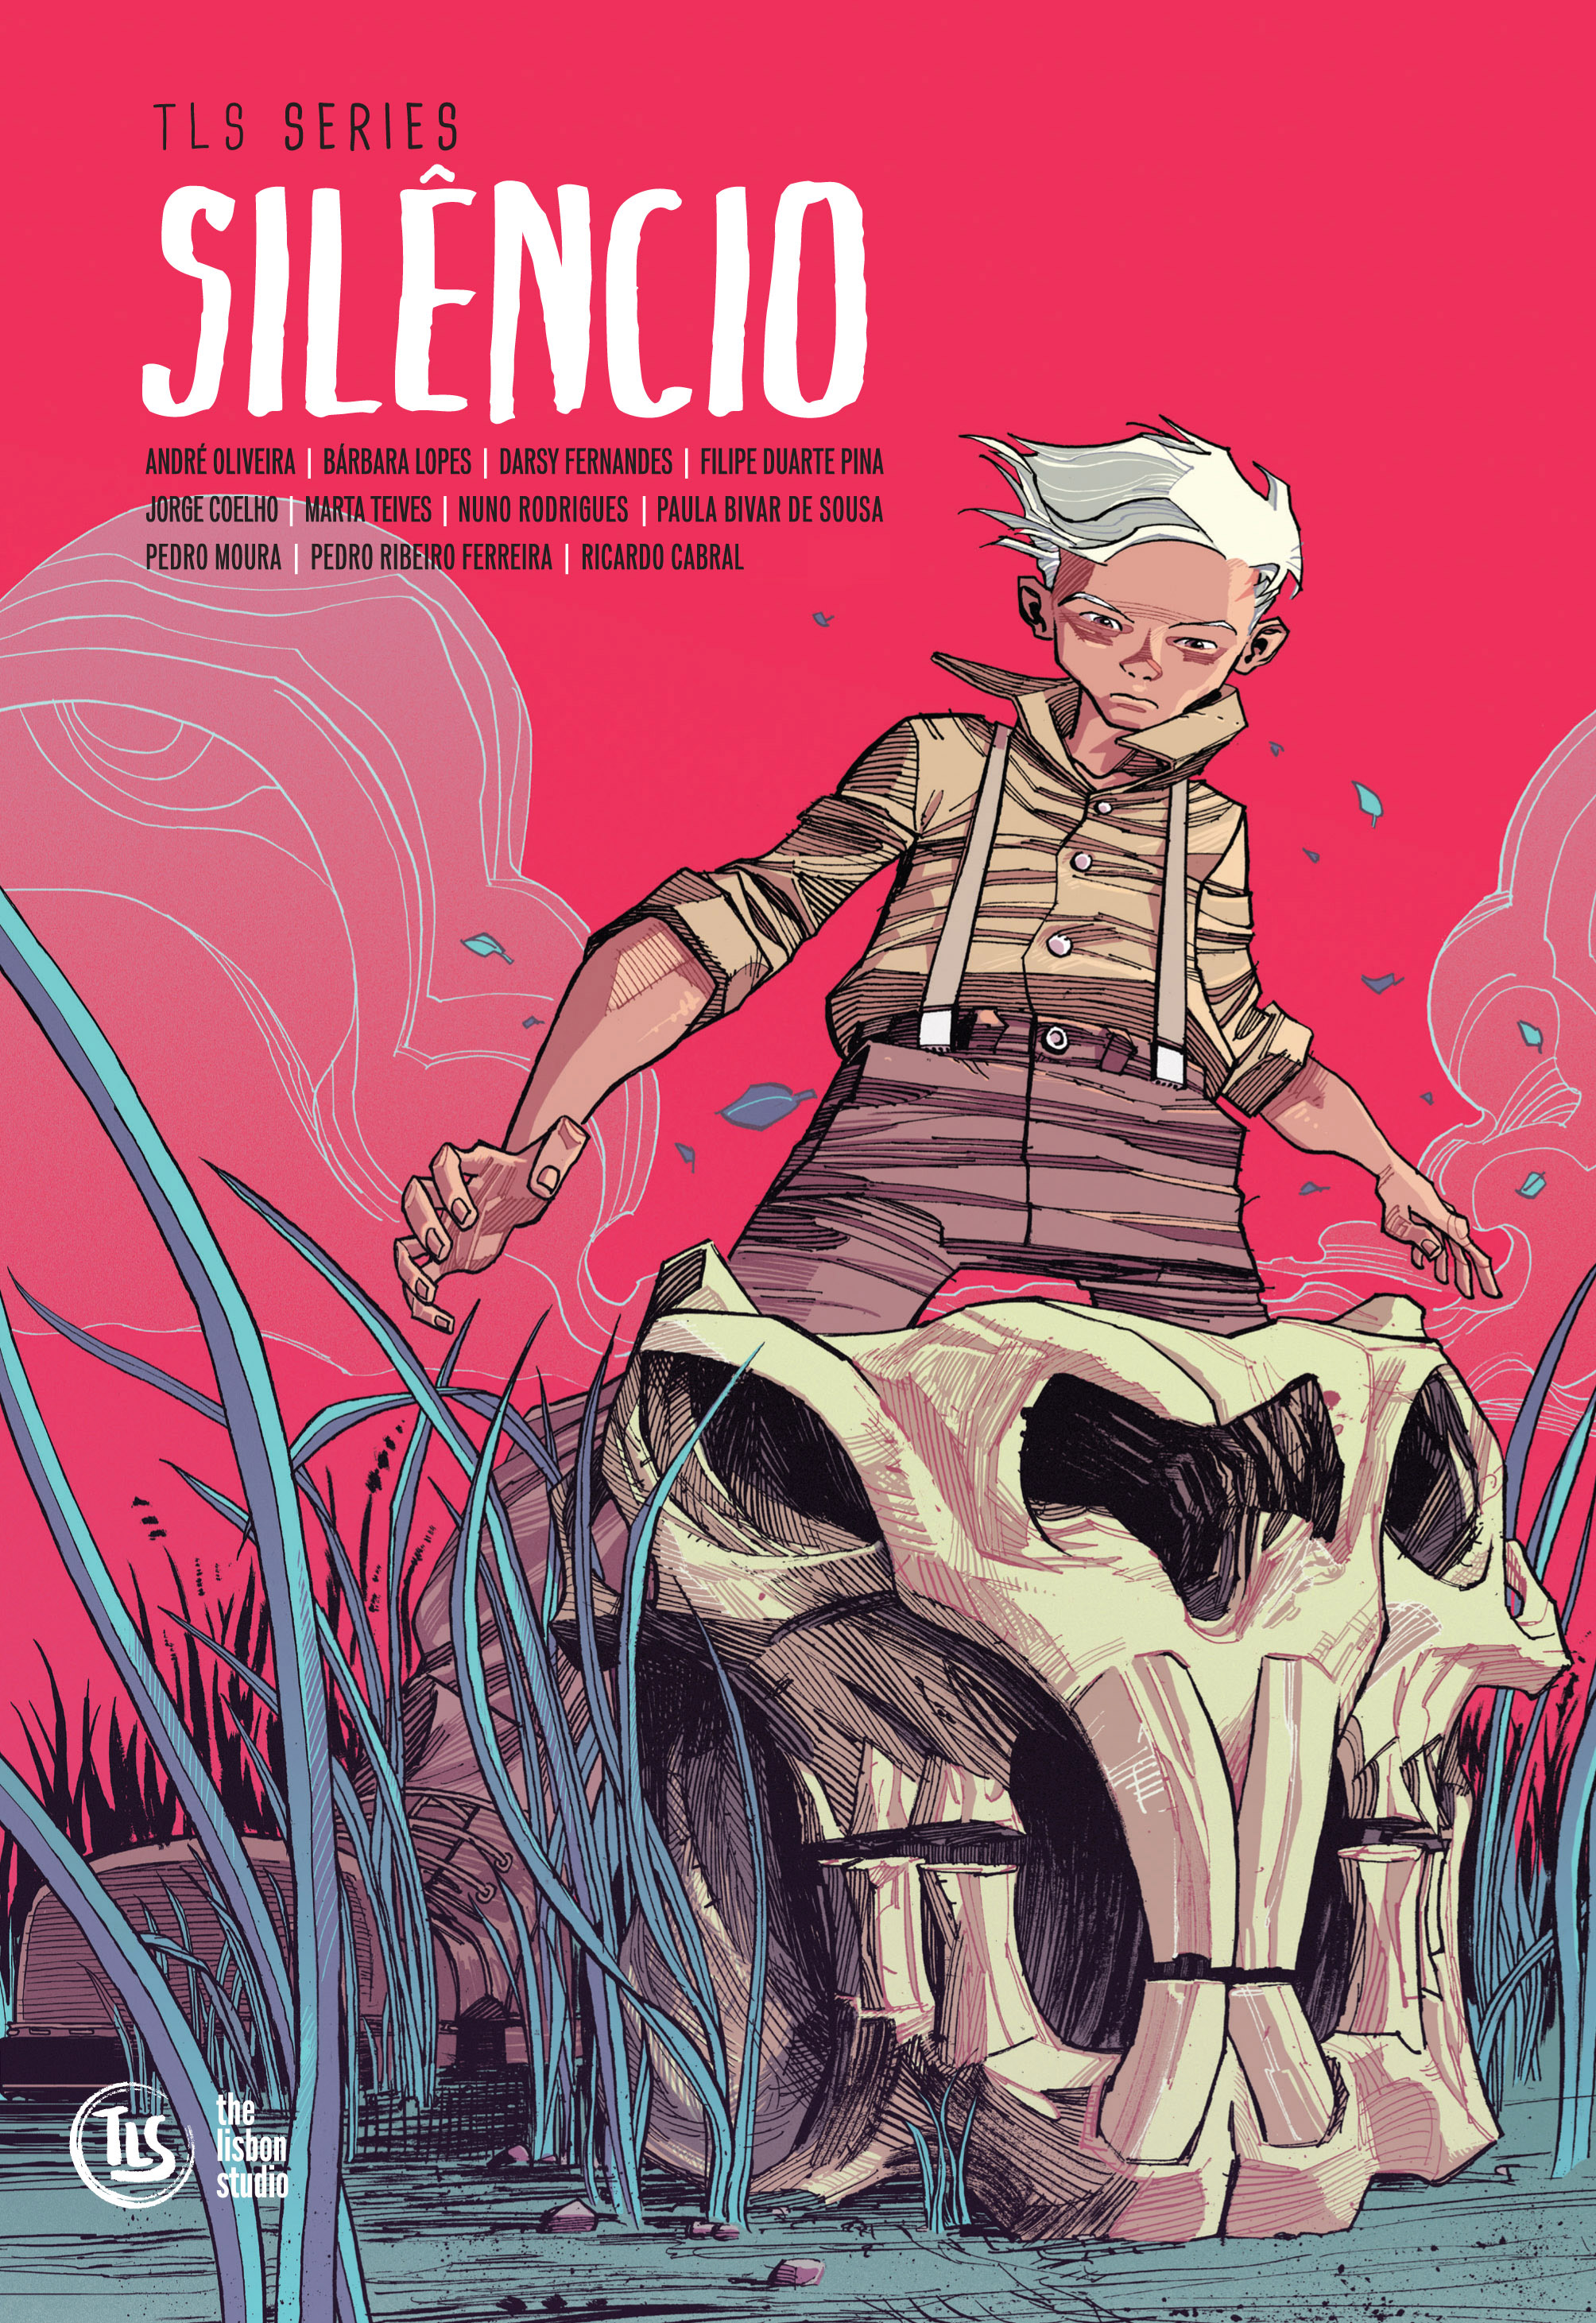 SILÊNCIO: The Lisbon Studio Series, vol. 2